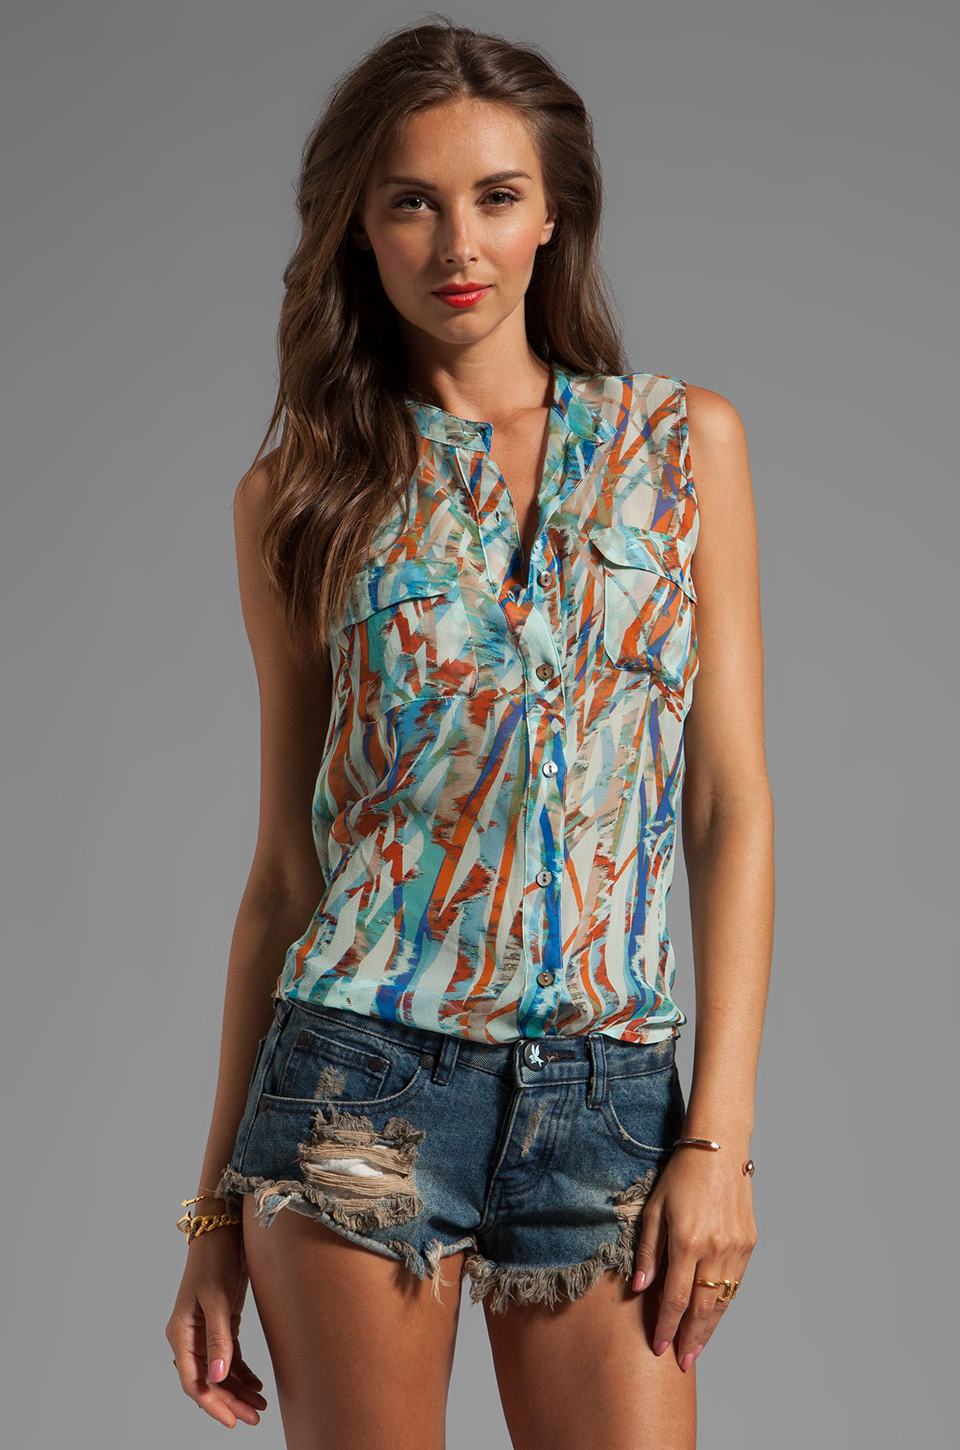 Gypsy 05 Cannes Seismograph GGT Sleeveless GGT Button Down Top in Seagreen